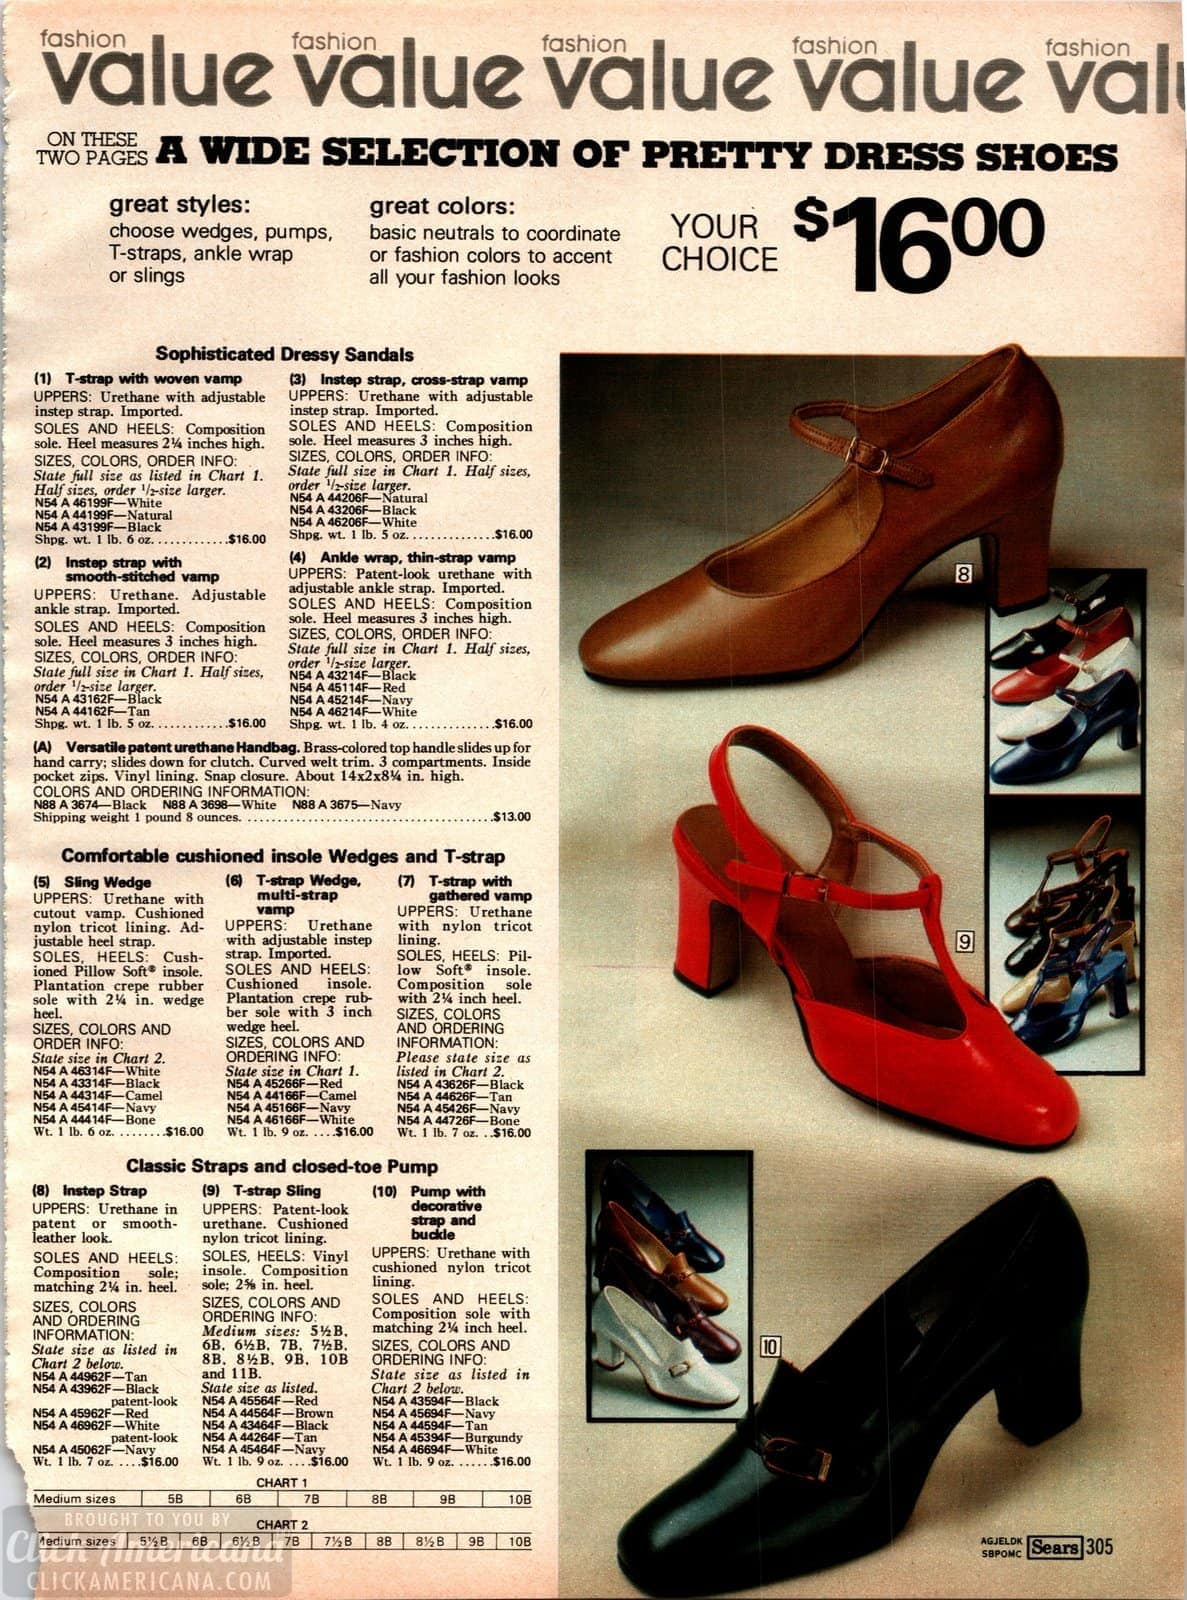 Sophisticated dressy sandals from 1979 - wedges and T-straps plus pumps and heels